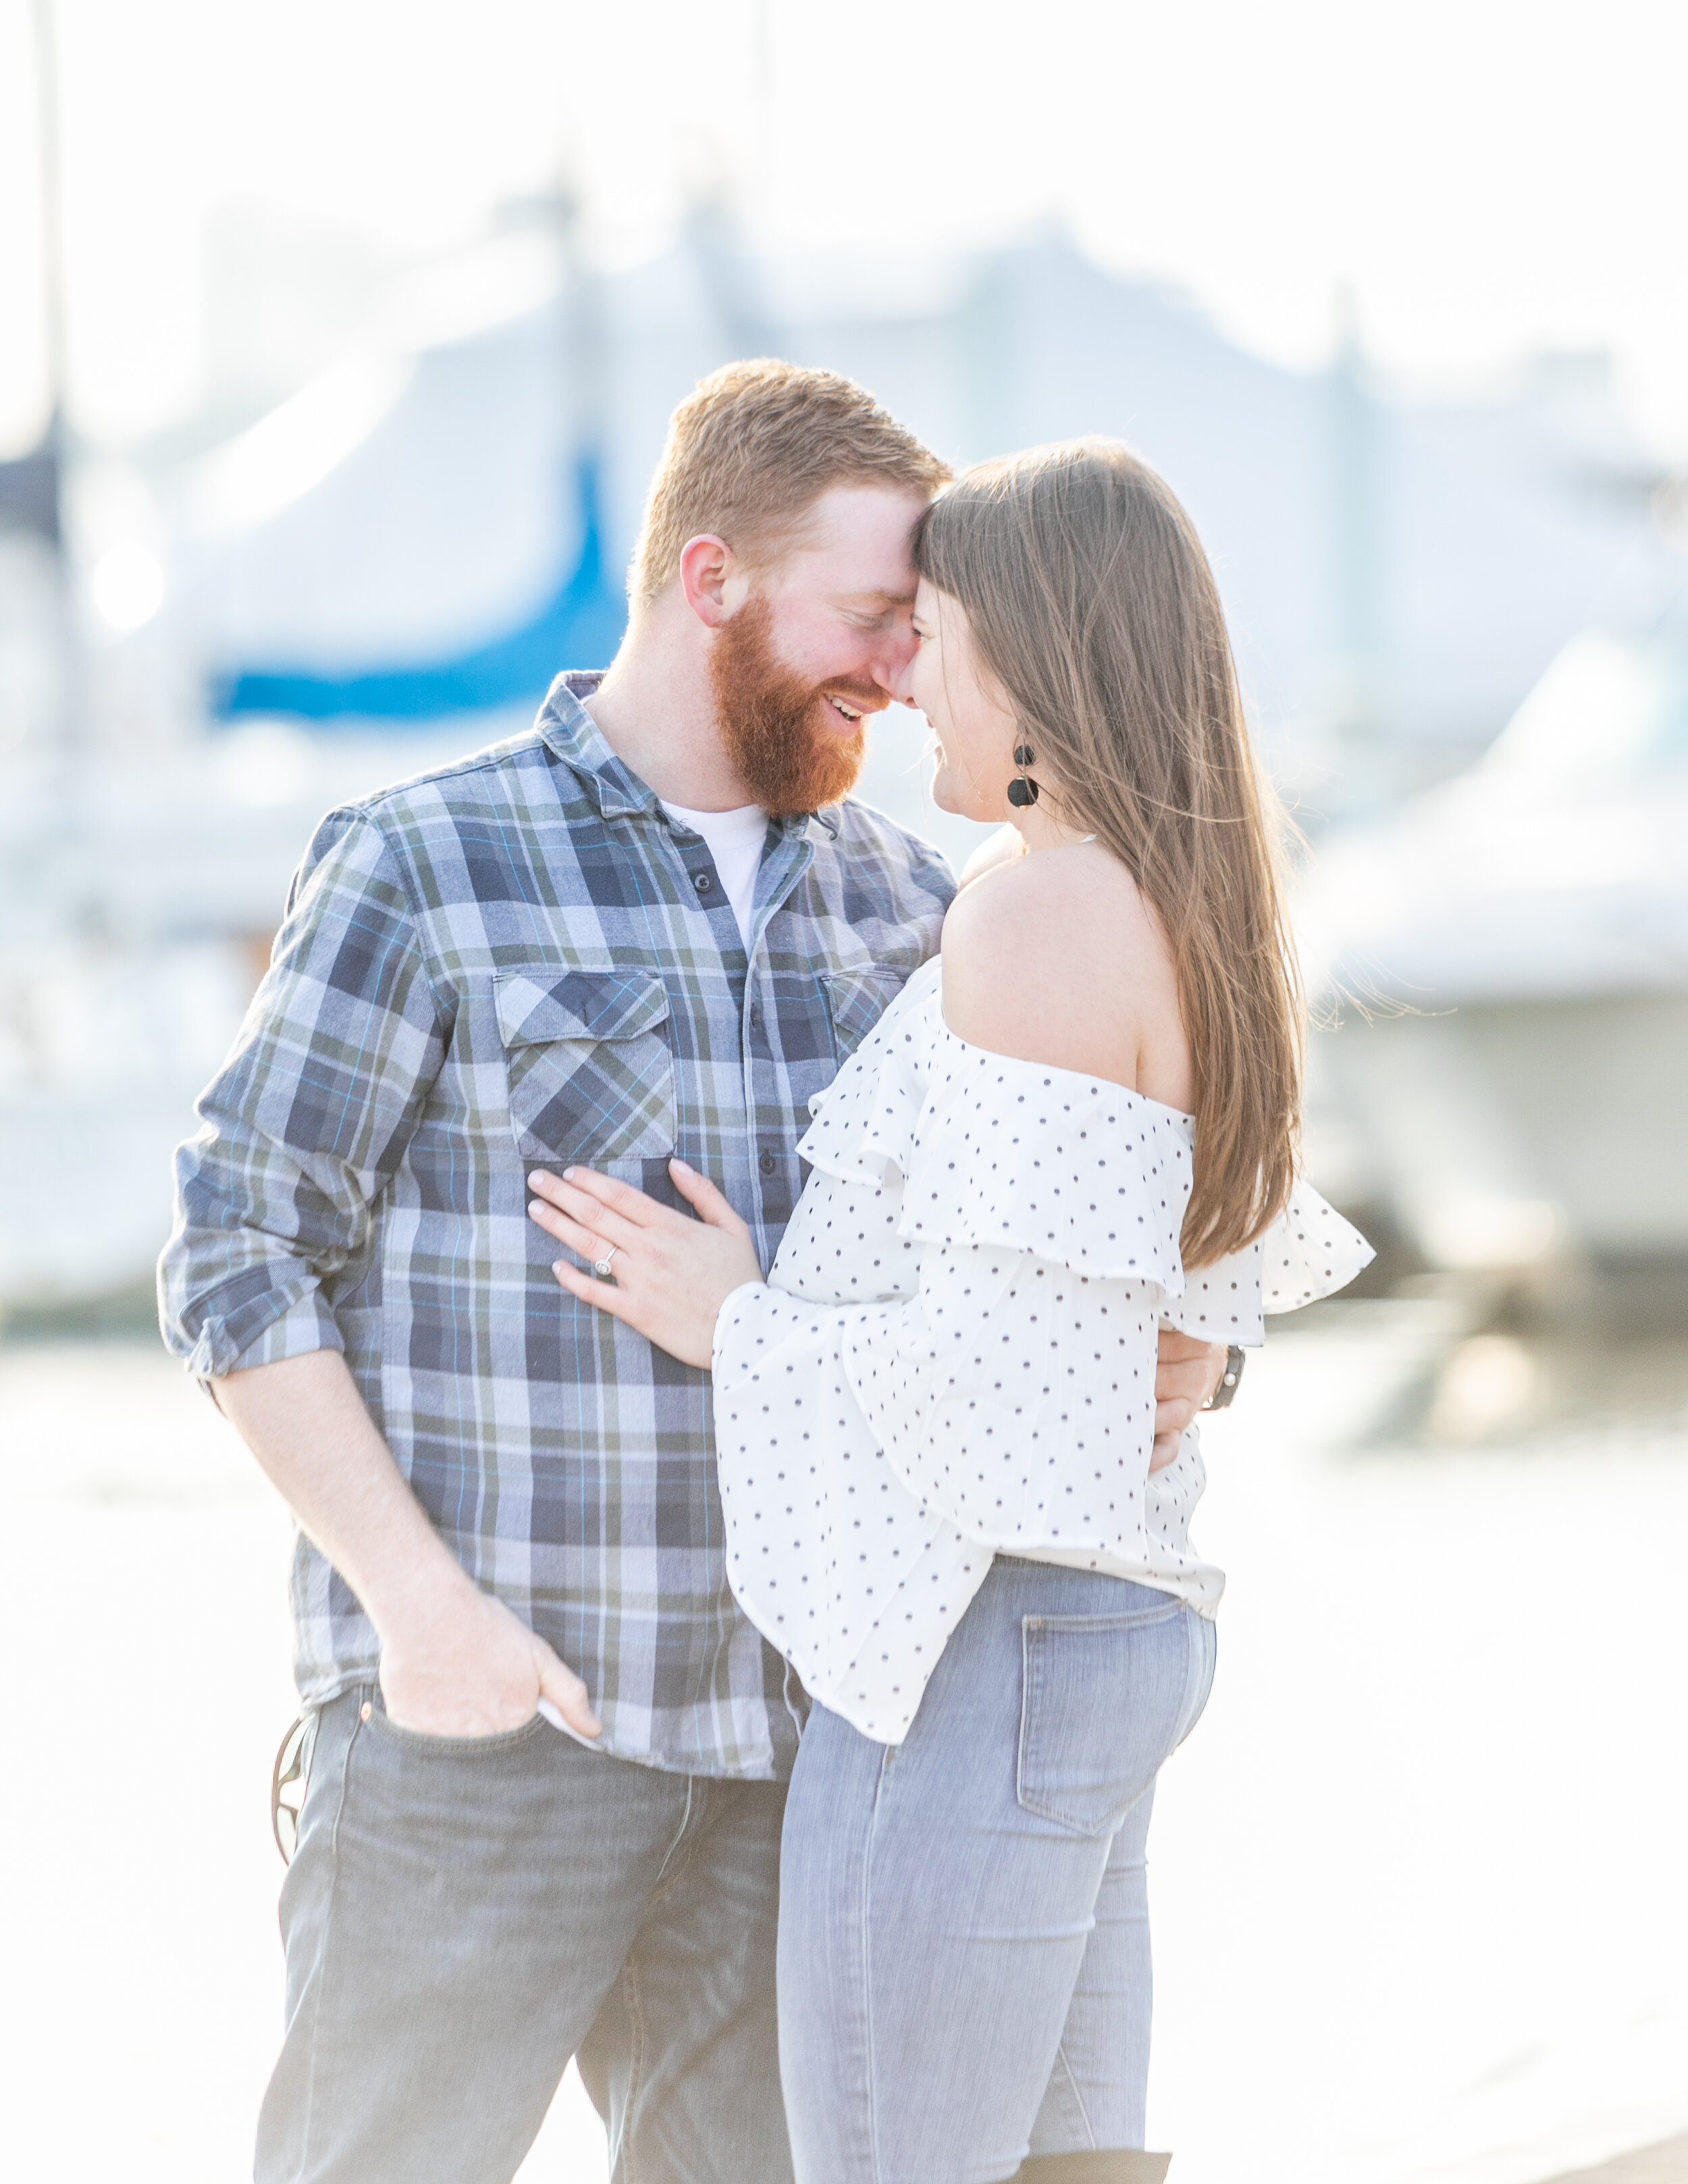 WIN A FREE ENGAGEMENT SESSION!! - DON'T MISS THIS OPPORTUNITY!